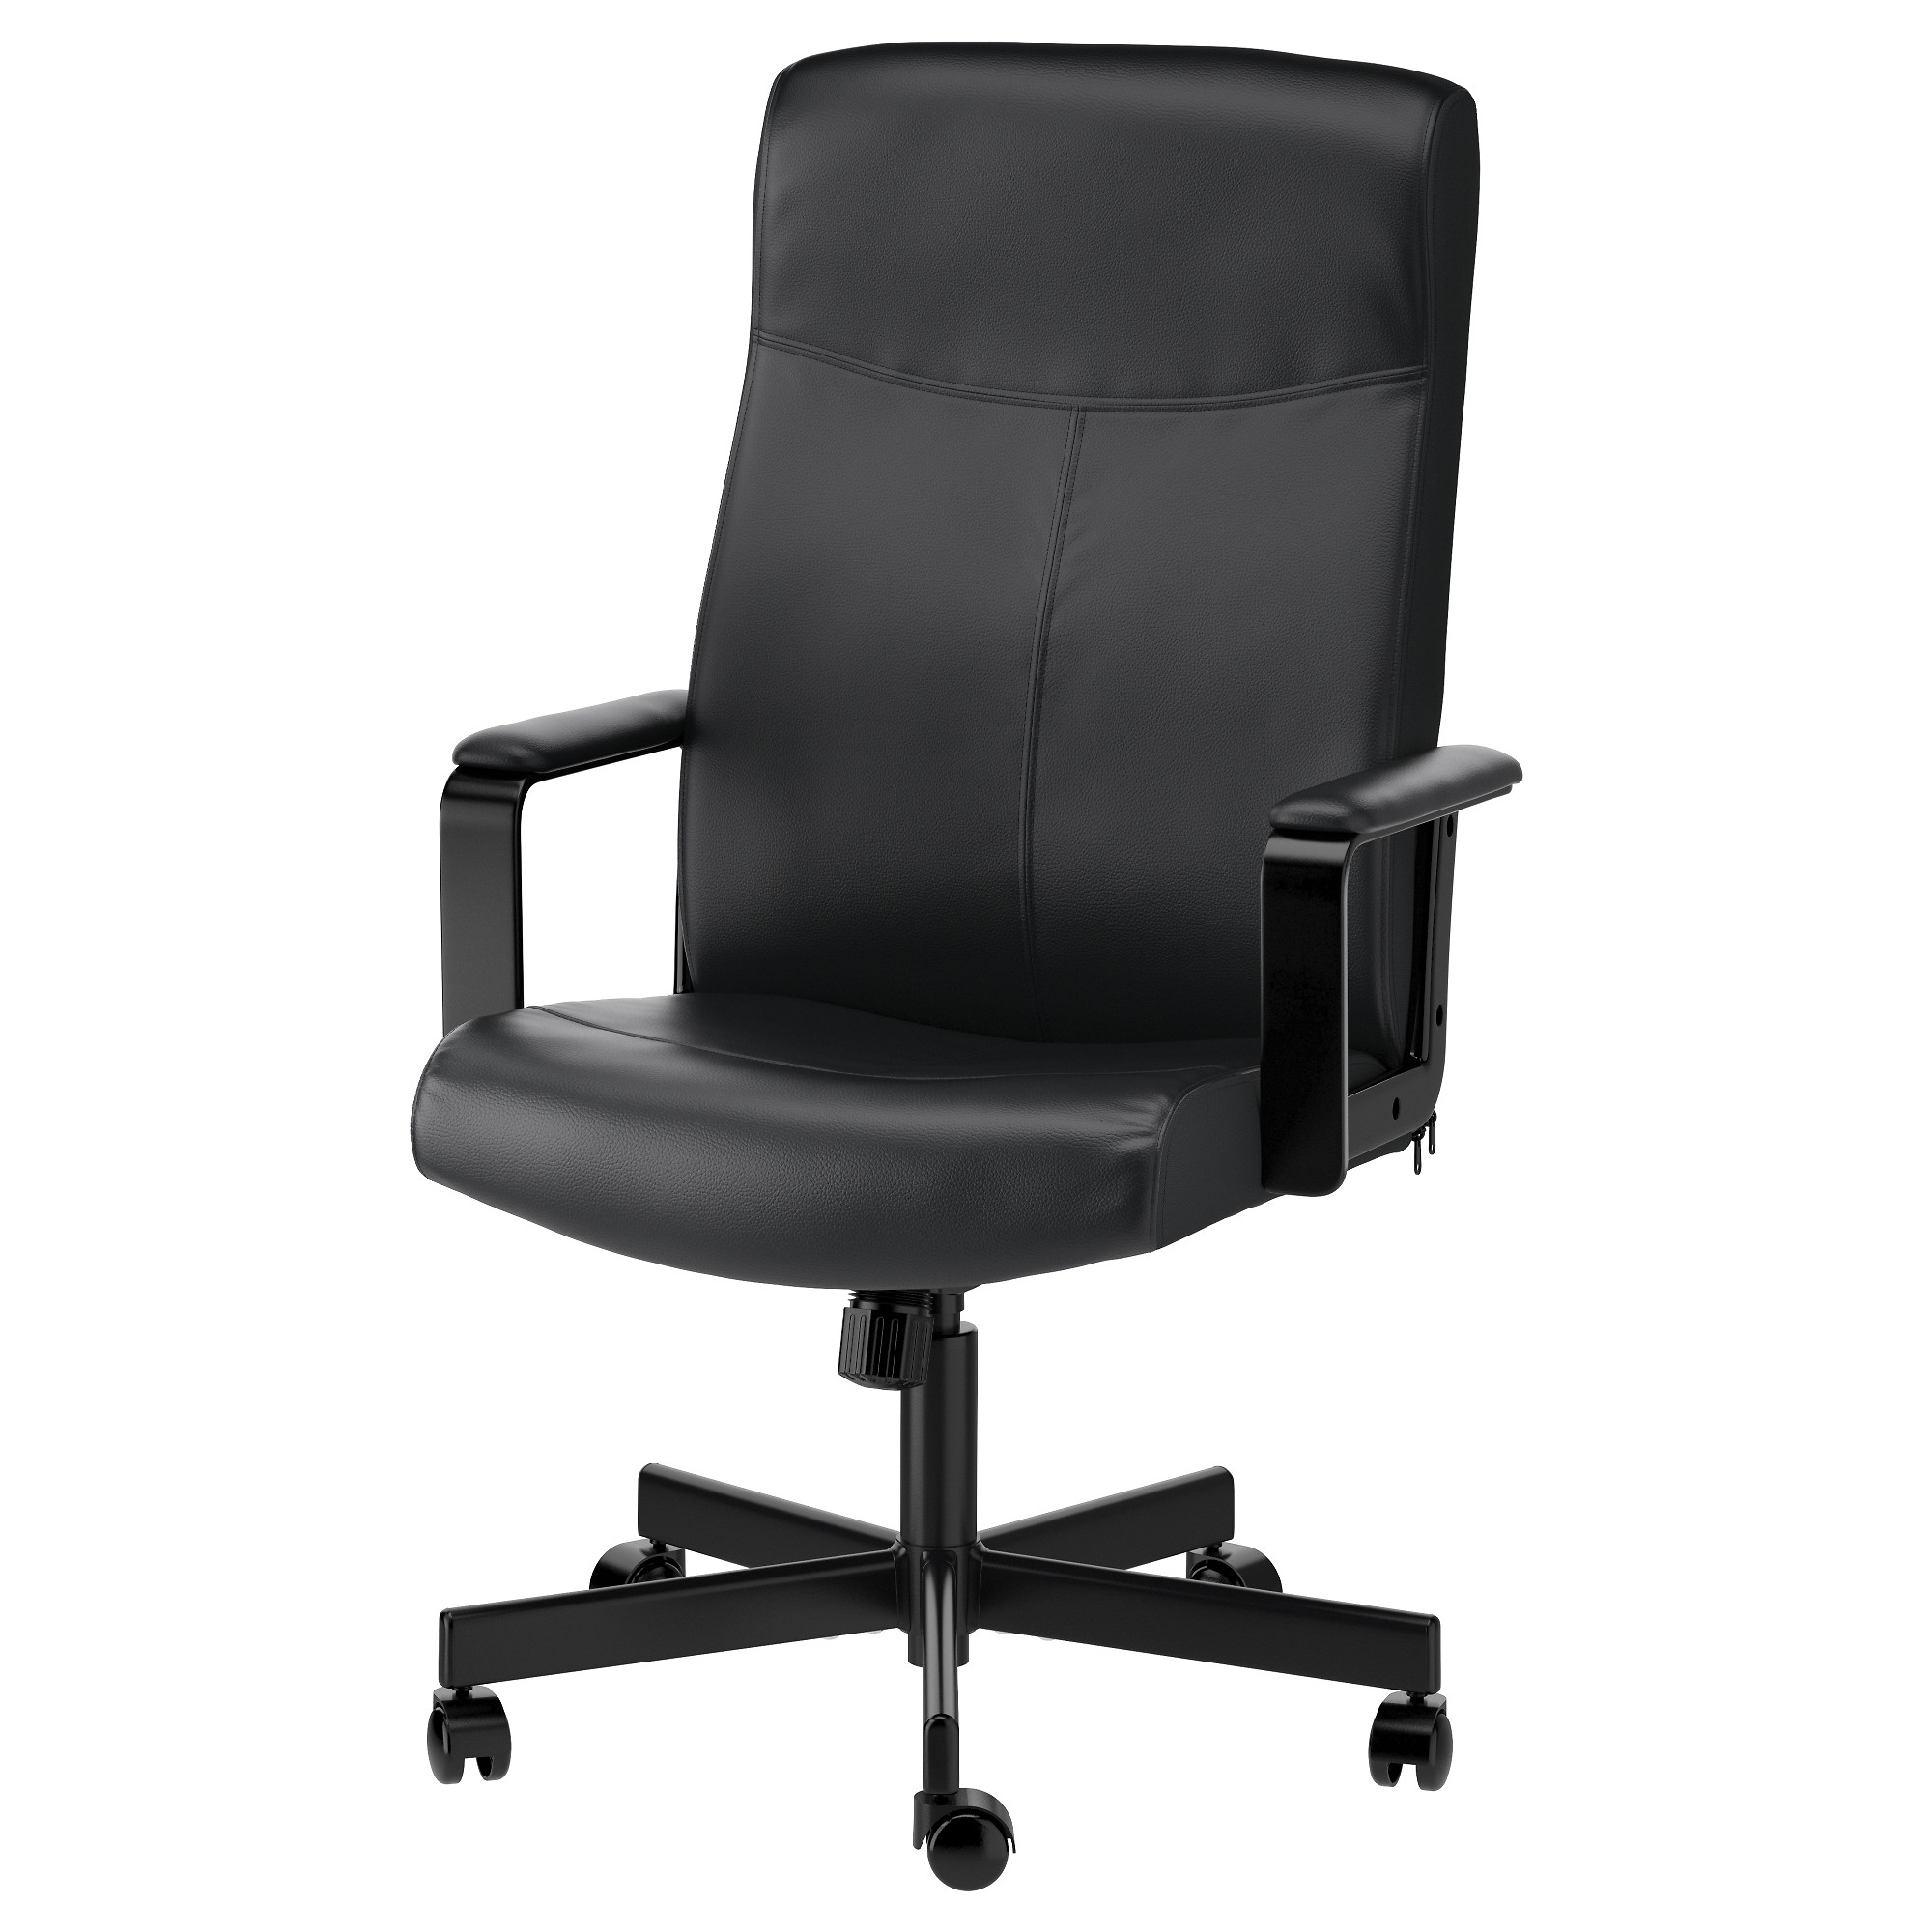 White Leather Office Chair Ikea MILLBERGET Swivel Chair Bomstad Black Tested For 242 Lb 8 Oz Depth 25 White Leather Office Ikea U